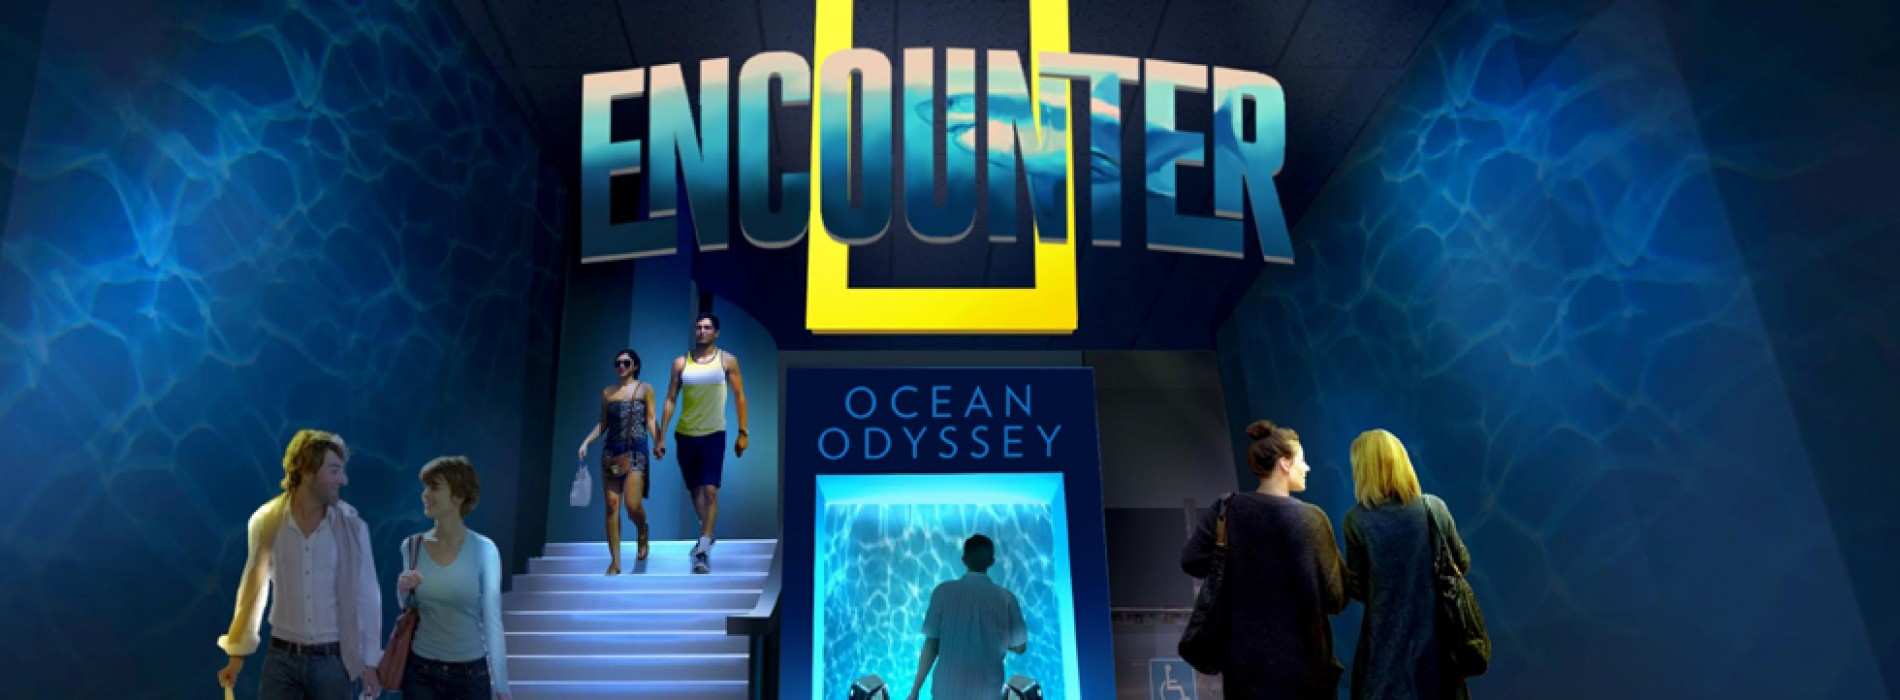 National Geographic Encounter to open Ocean Odyssey from October 6, 2017